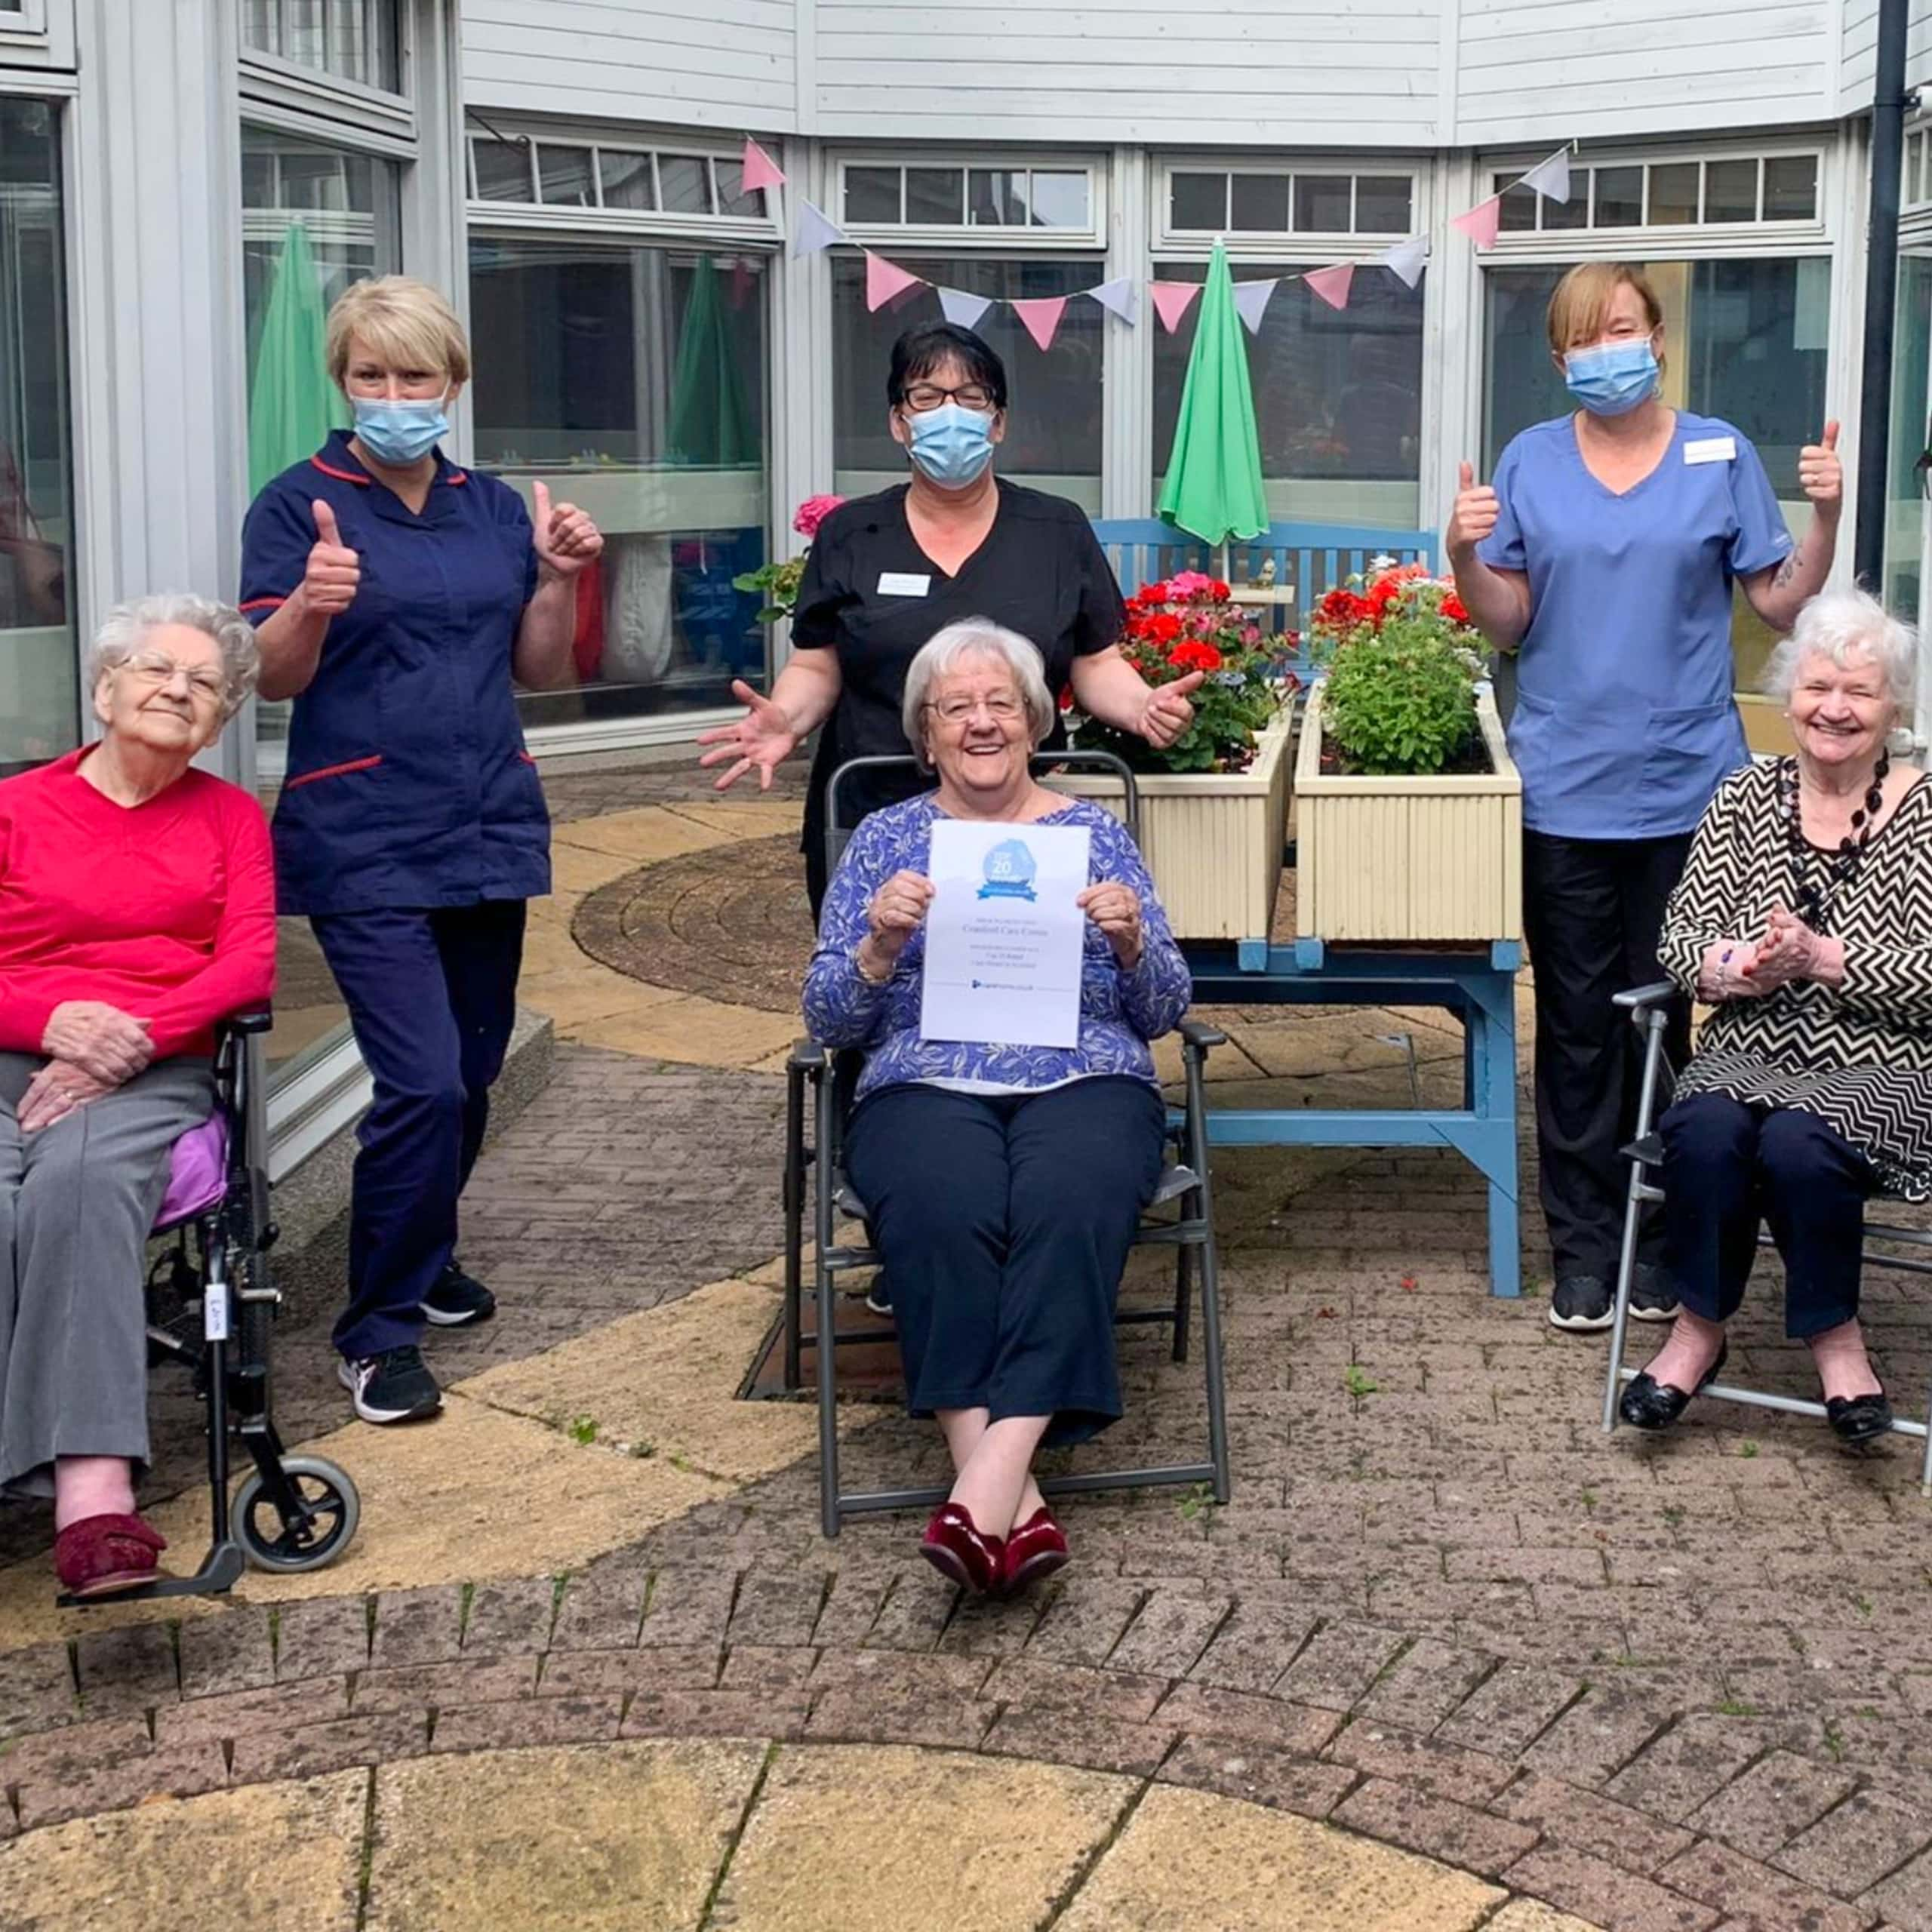 Staff and residents at Aberdeen care home Cranford with their Carehome.co.uk Top 20 Award Certificate.